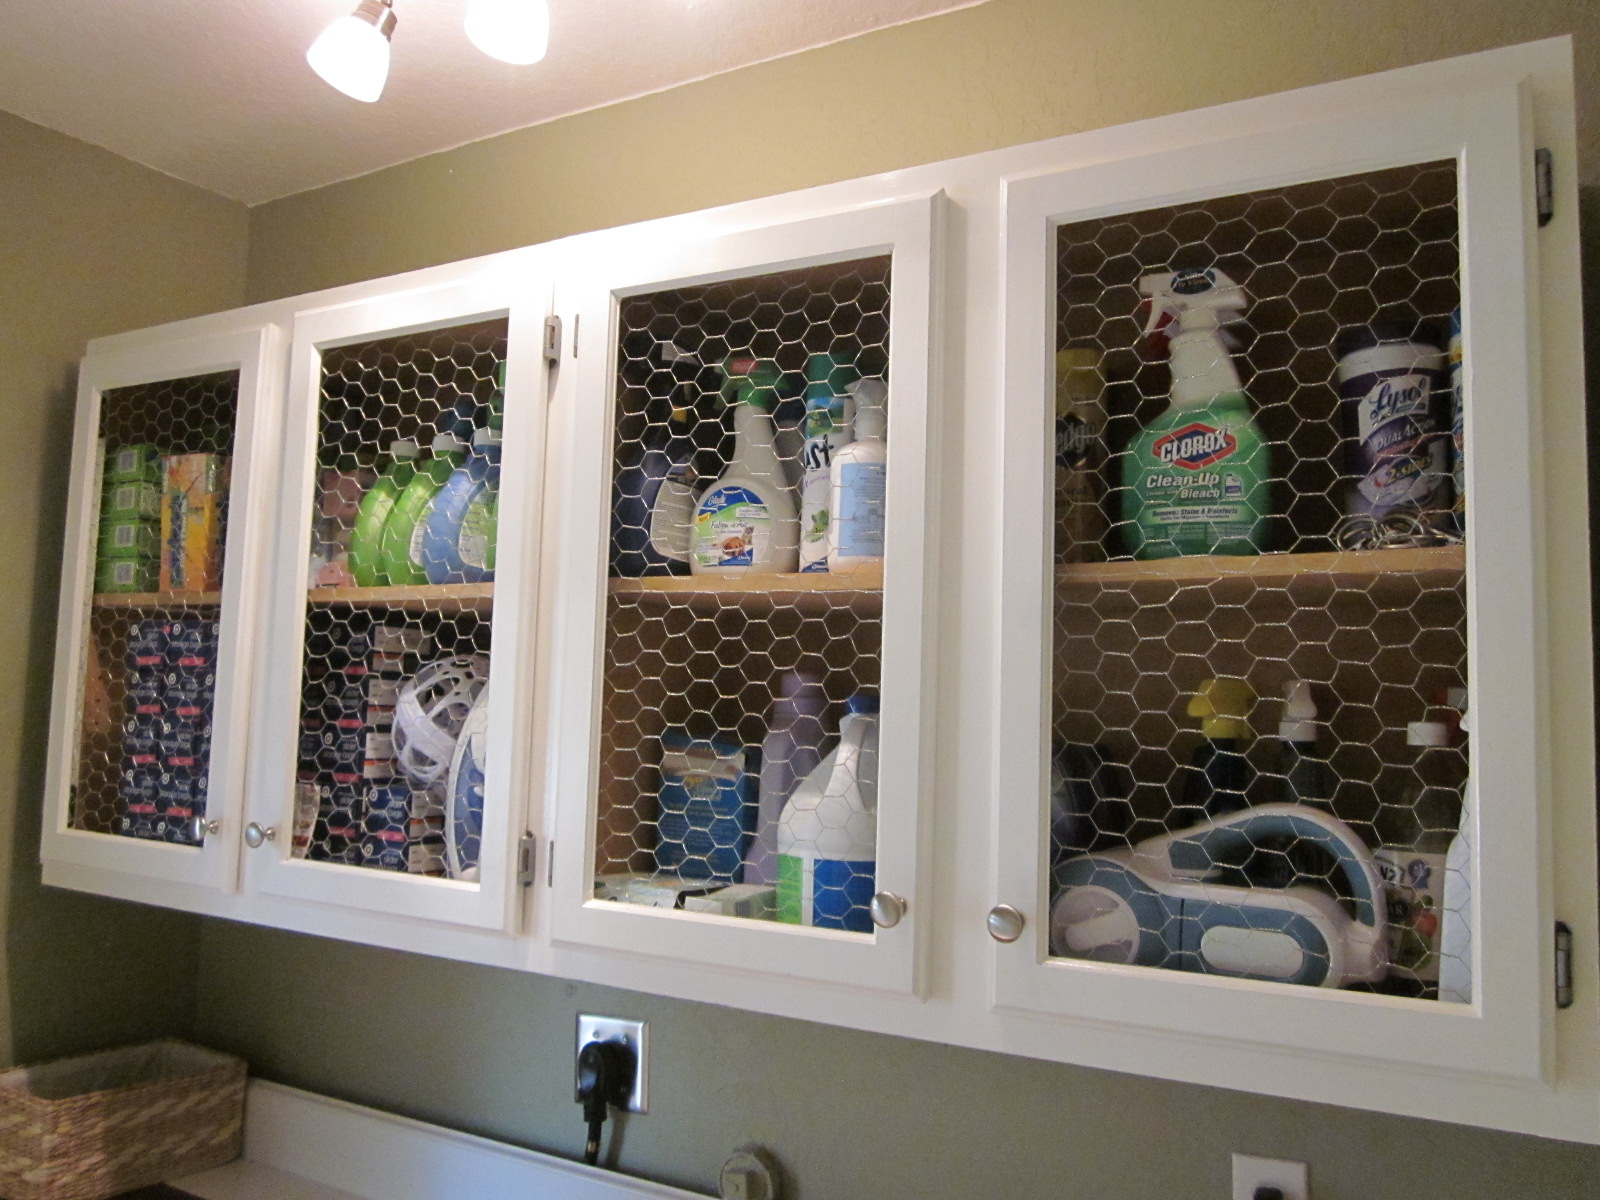 Laundry Room Cabinets with Chicken Wire